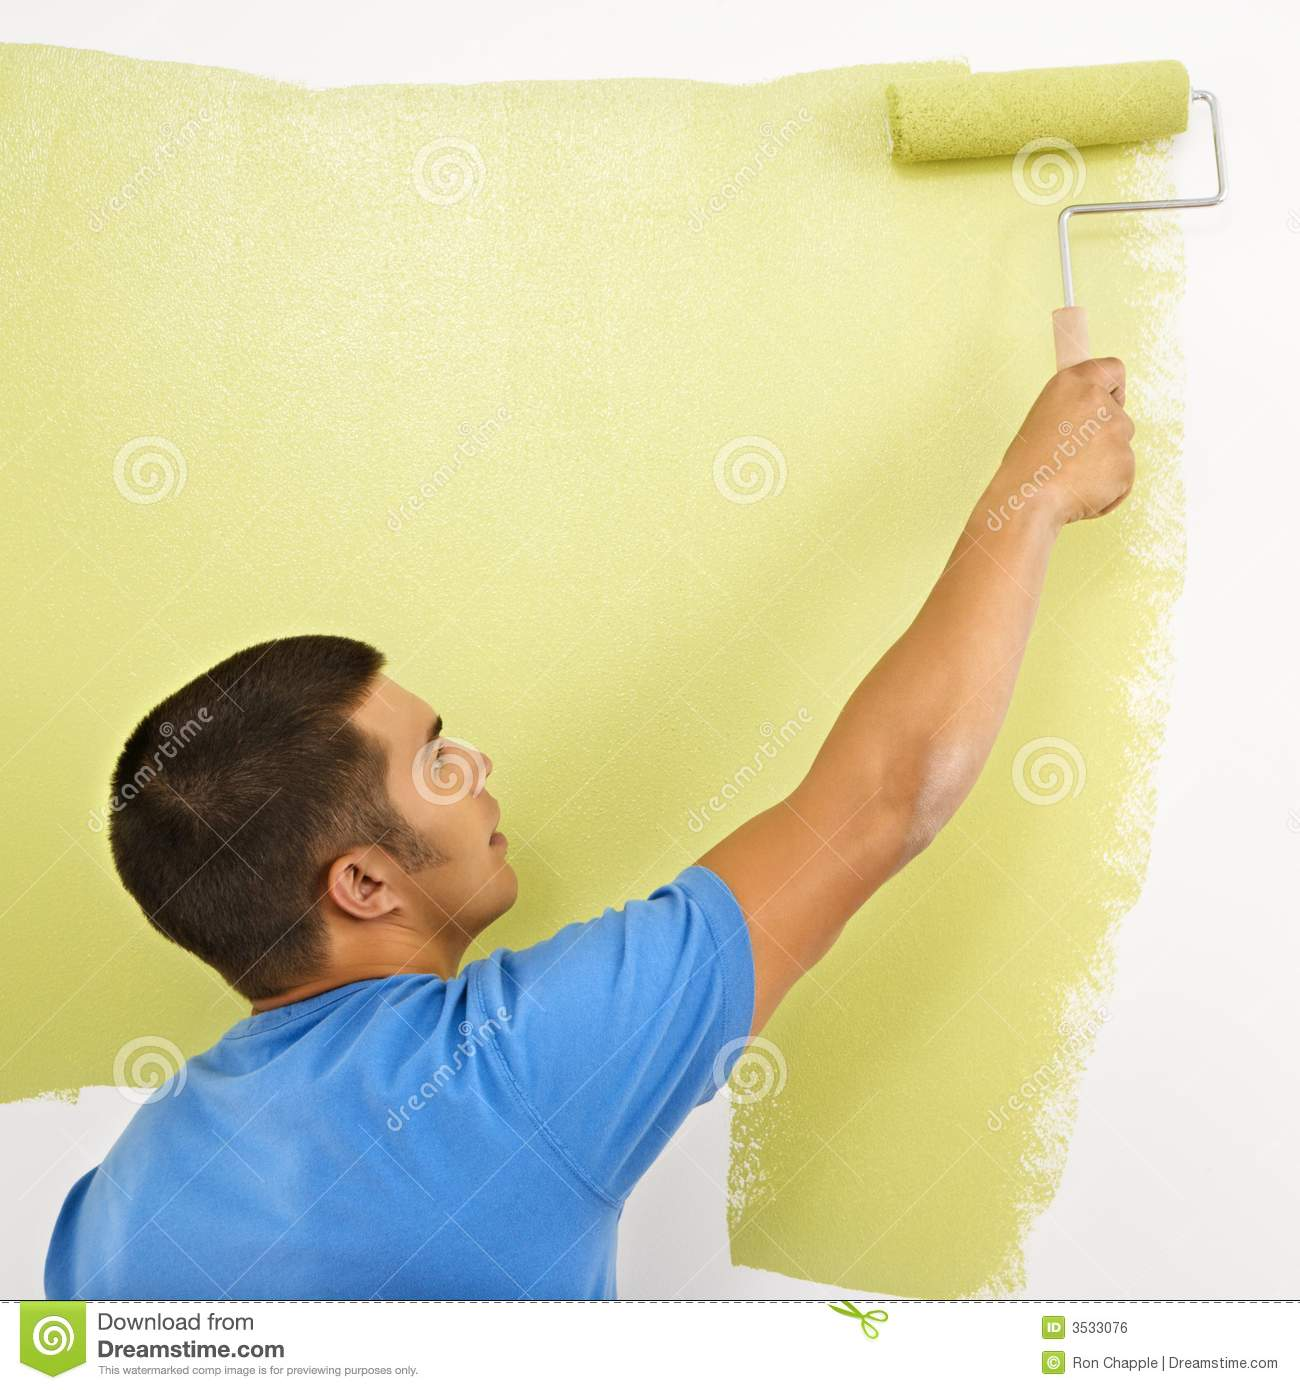 Person painting wall - Green Man Paint Painting Roller Wall